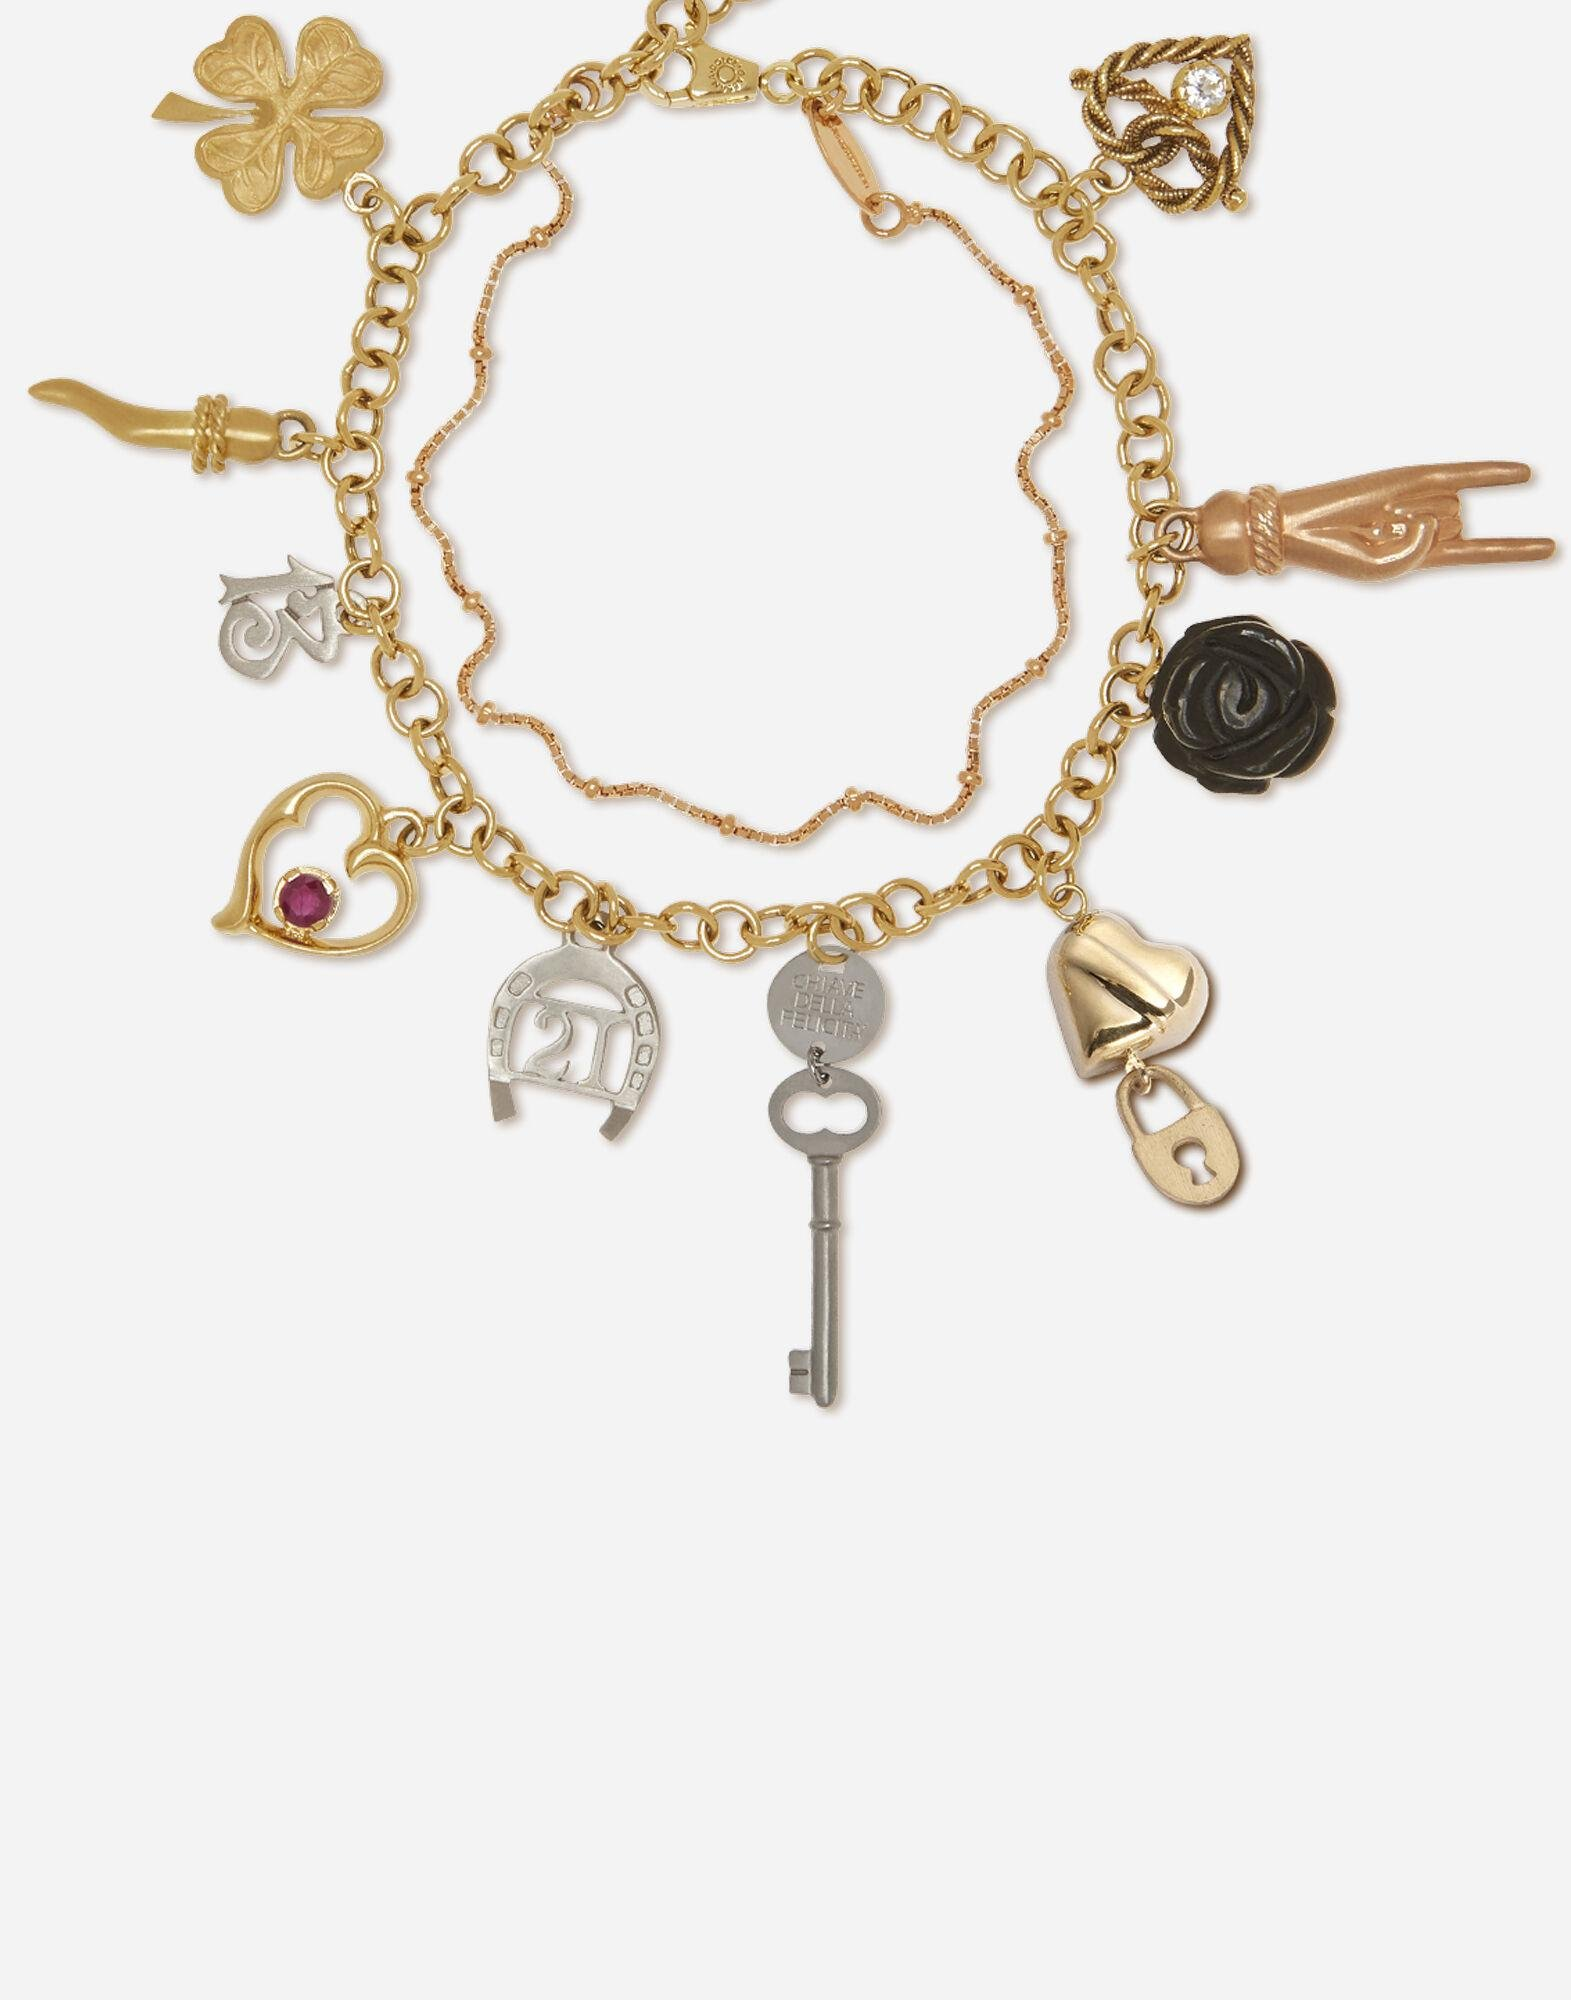 Family bracelet in yellow, white and red gold with black jades and ruby 1